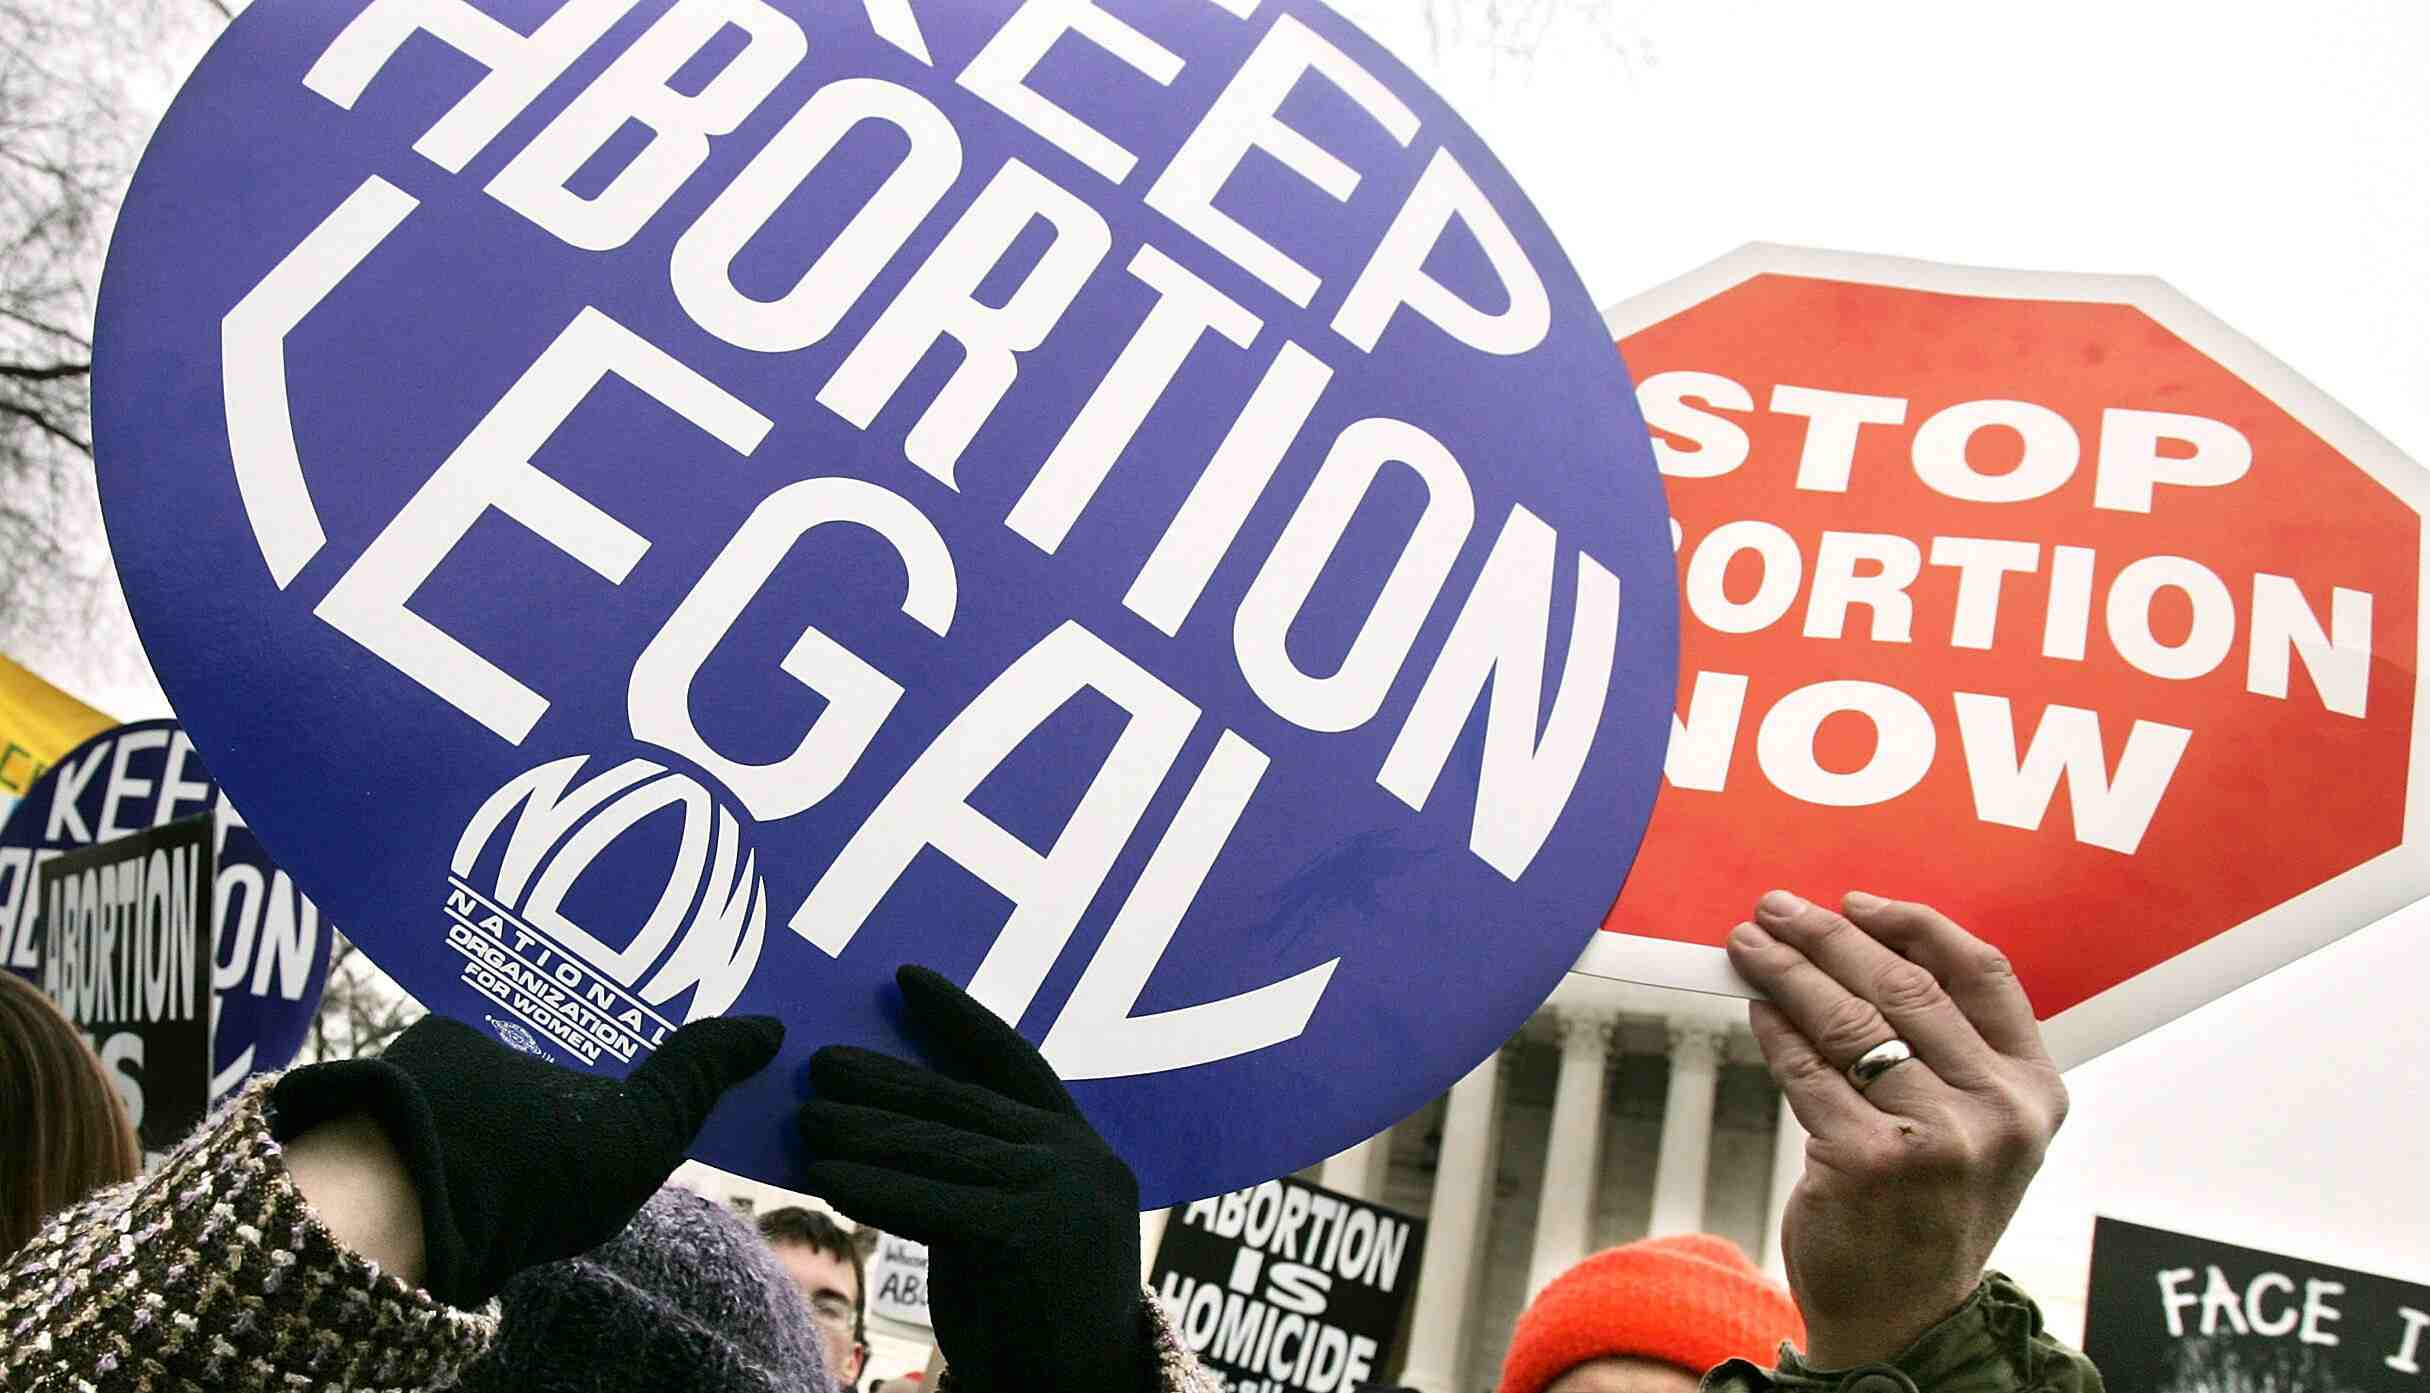 Pro-choice and pro-life signs at 2005 march in Washington, DC.